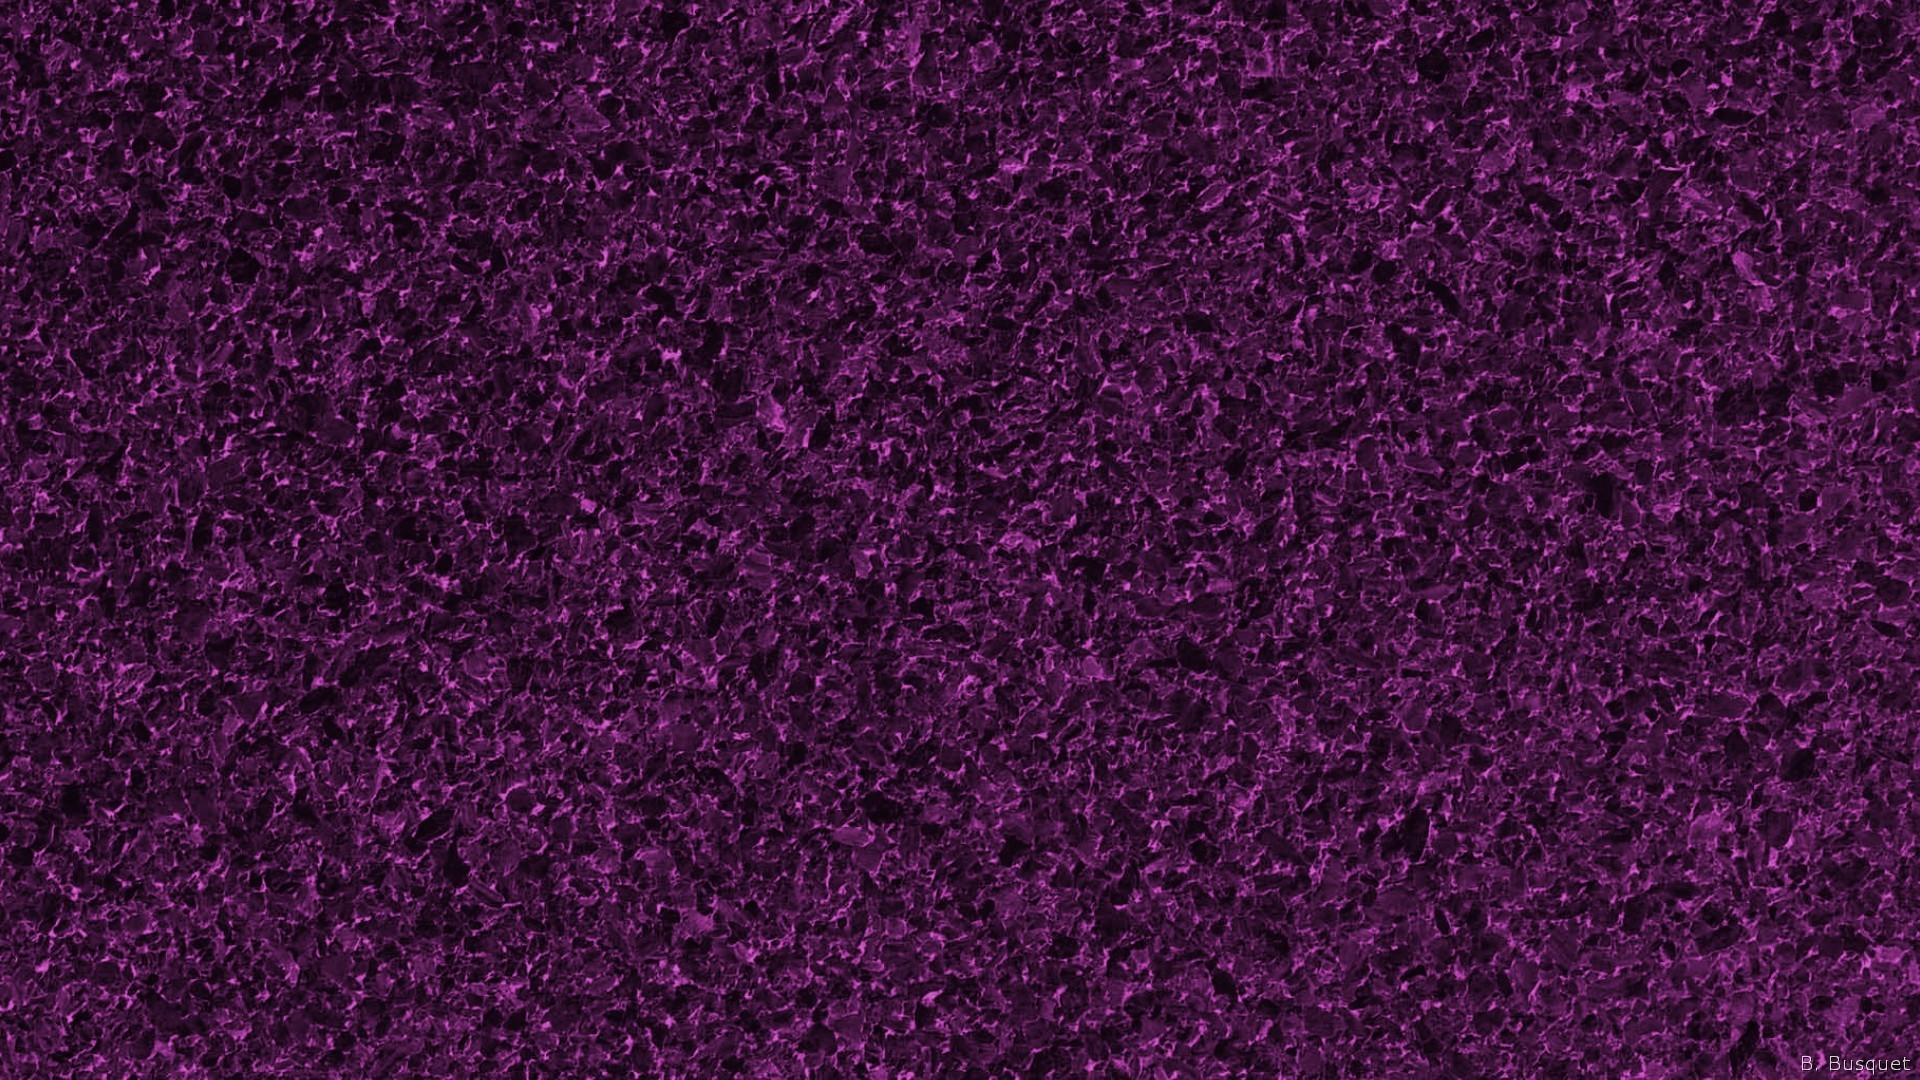 1920x1080 Purple wallpaper with dark pattern